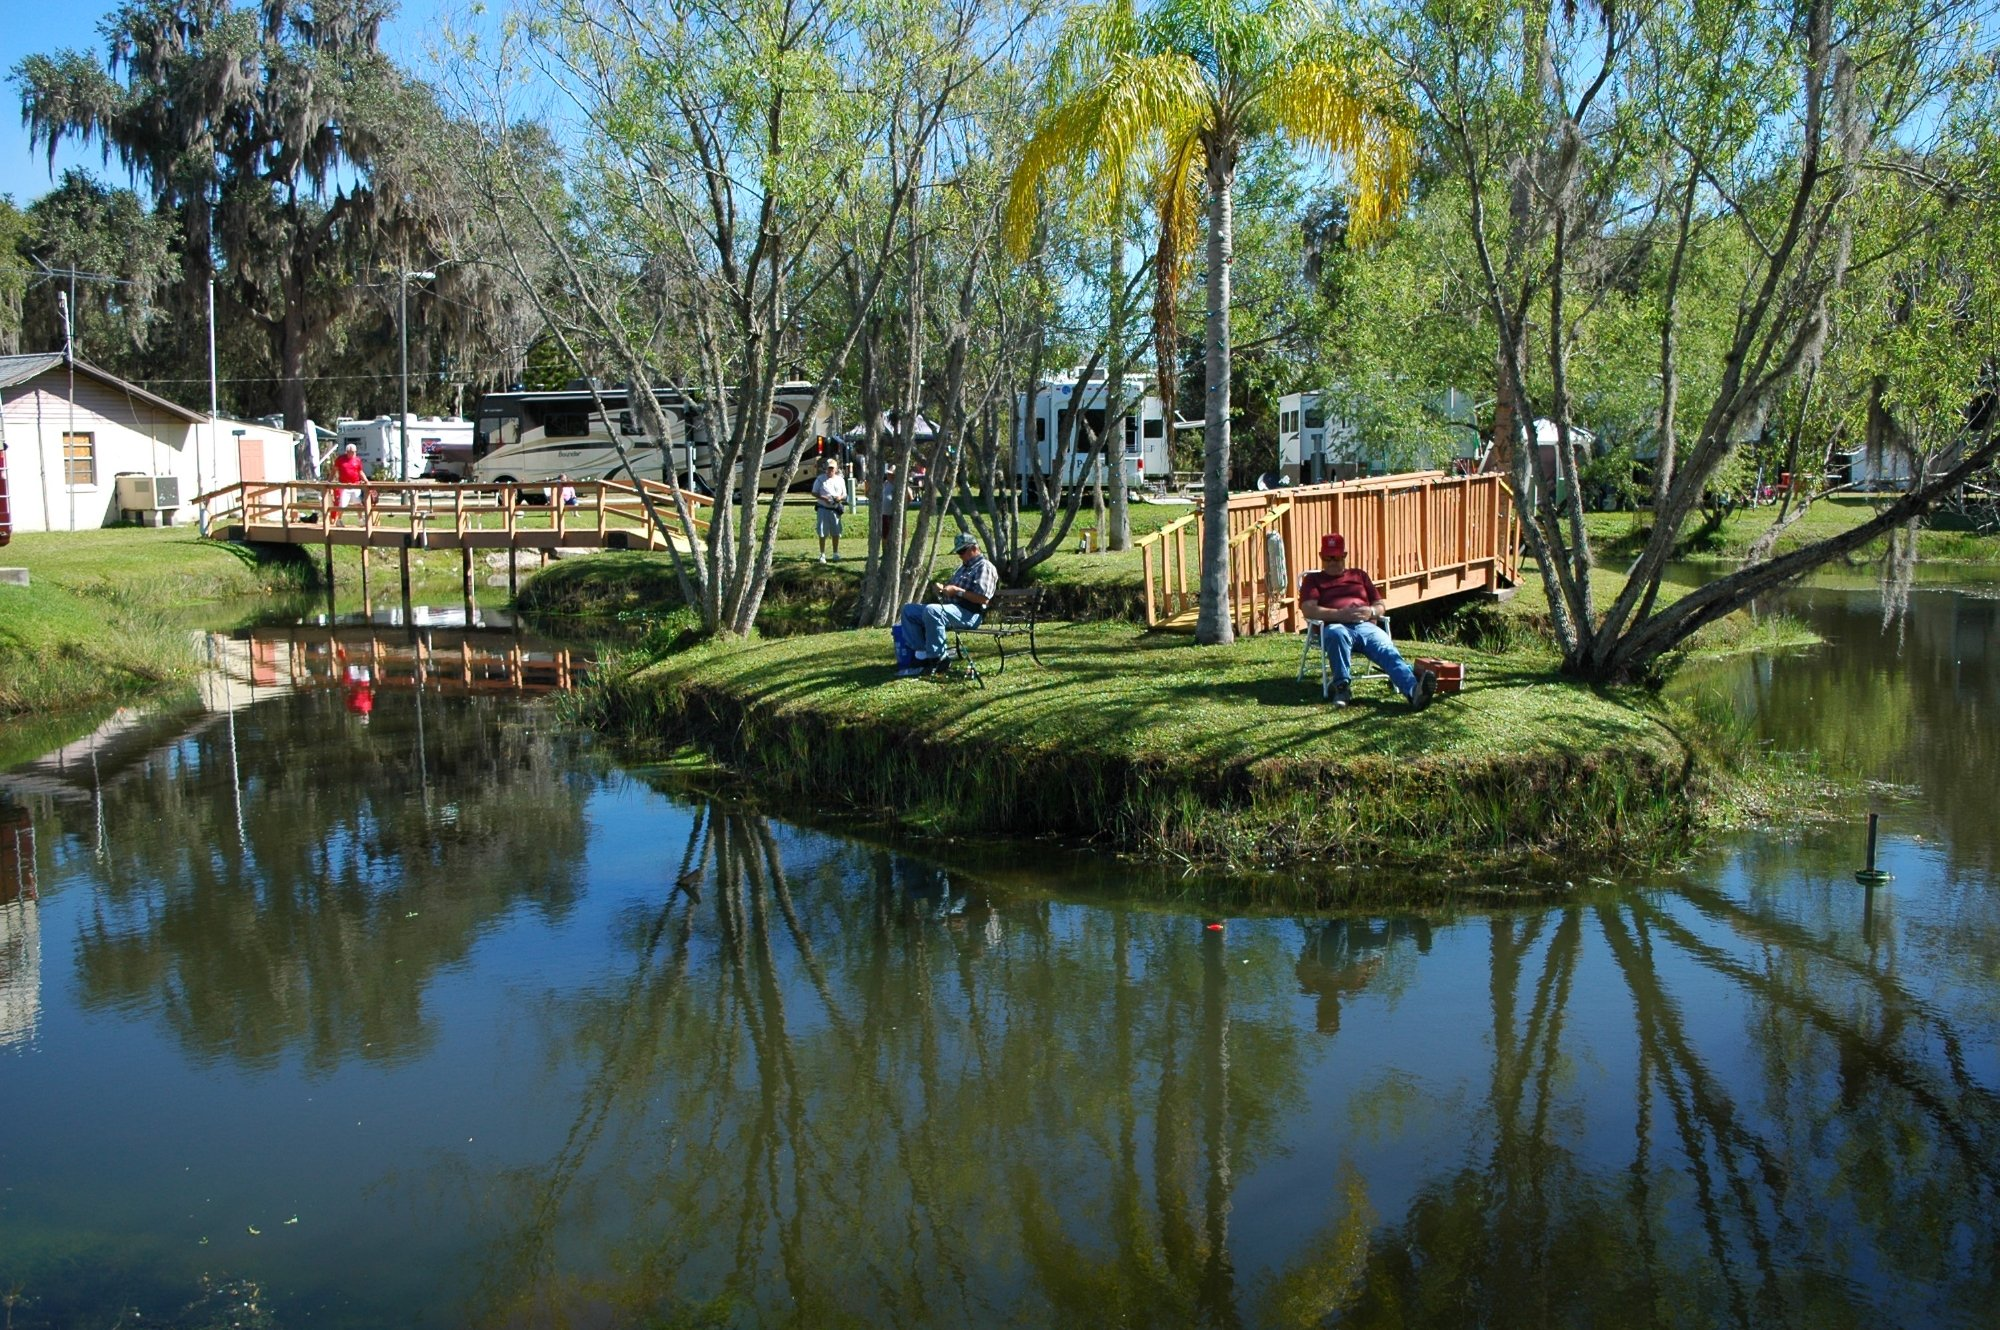 The oasis at zolfo springs in zolfo springs the oasis at - St patrick s church palm beach gardens ...